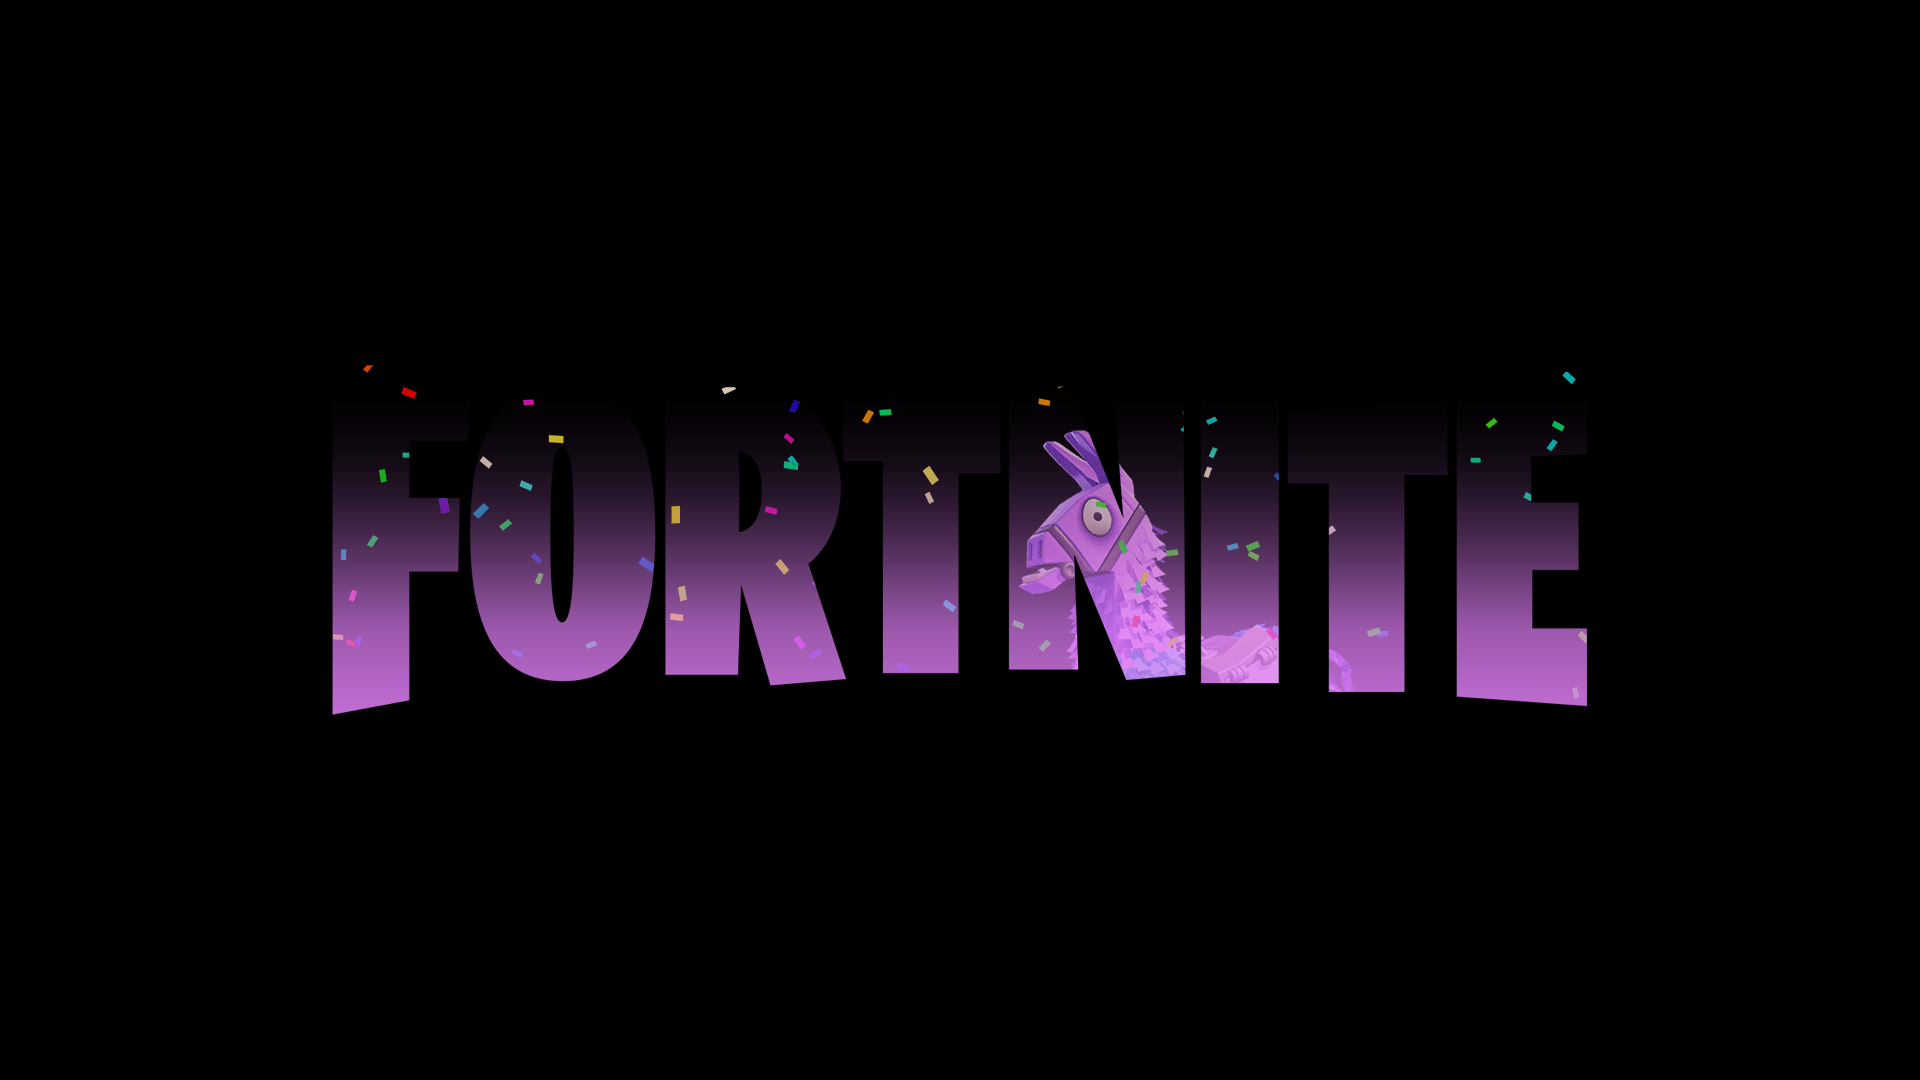 I quickly made this Fortnite background. What do you think? Would